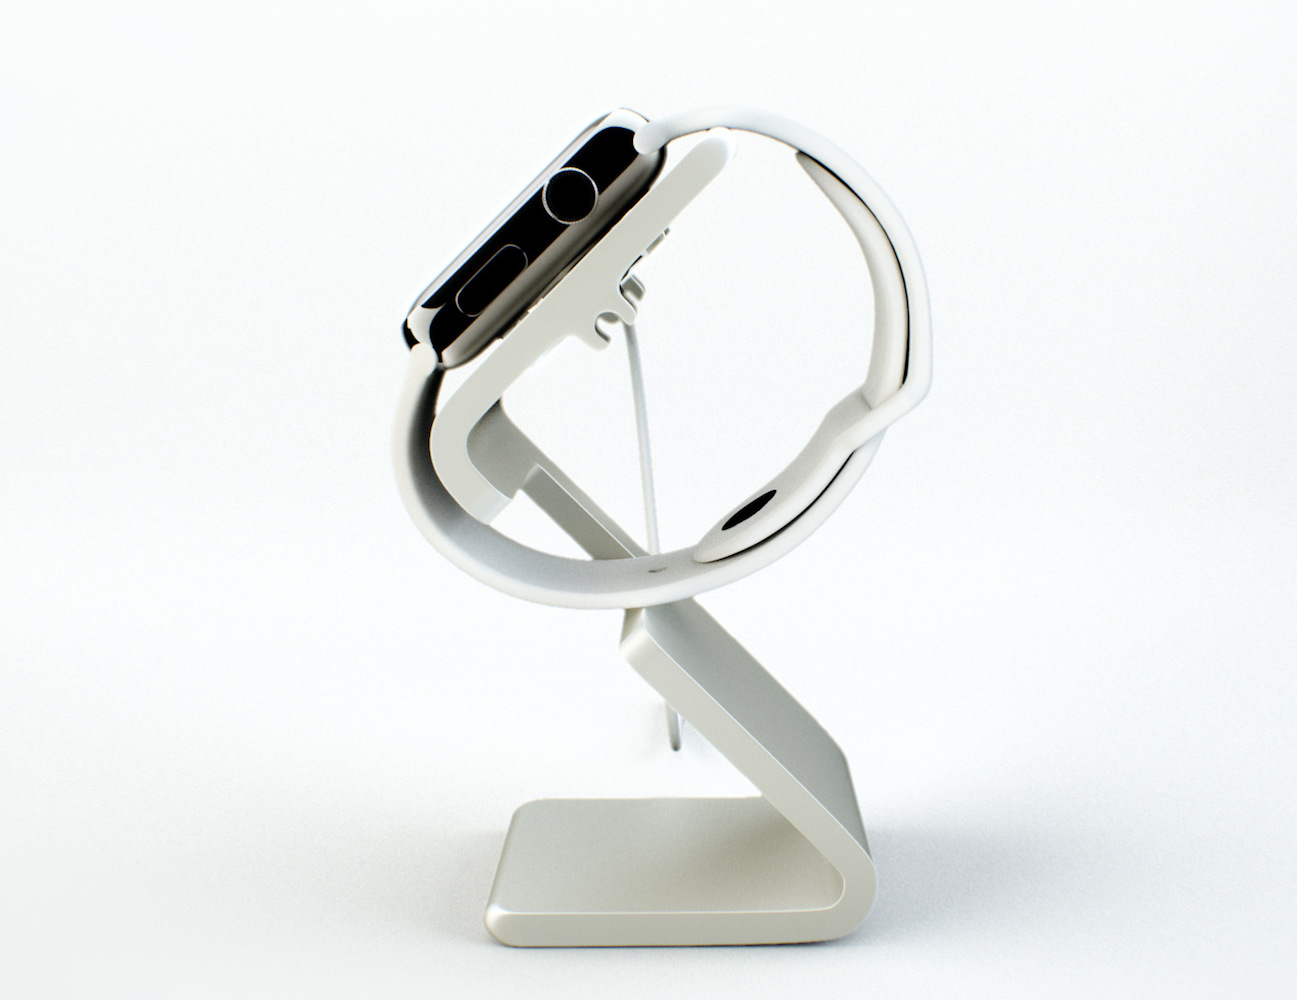 HEDock Apple Watch Dock